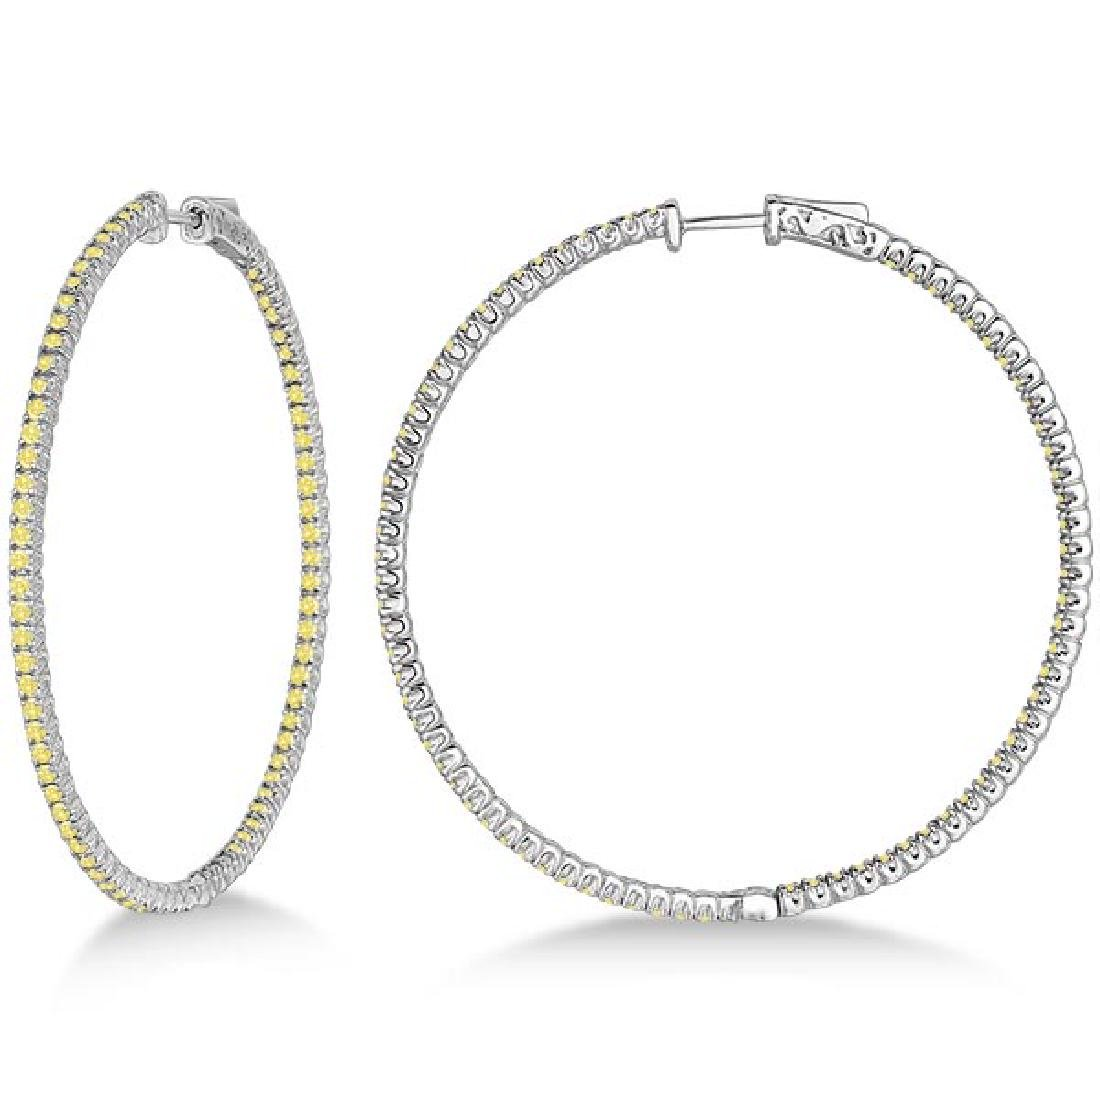 X-Large Yellow Canary Diamond Hoop Earrings 14k White G